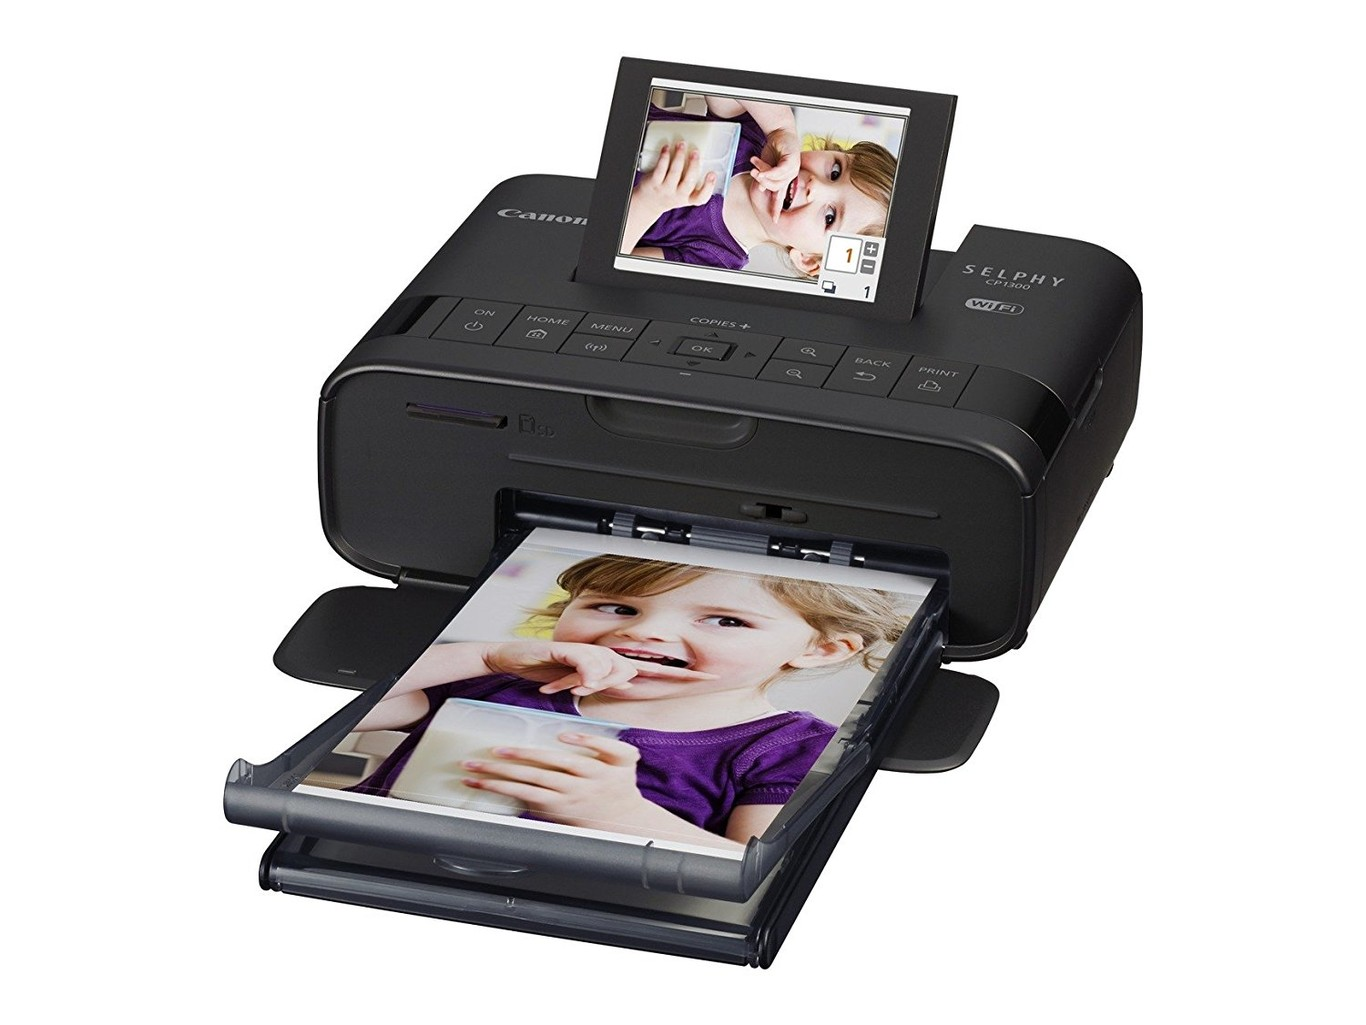 23 Best Printers (2020): Buying Guide With Tips 23